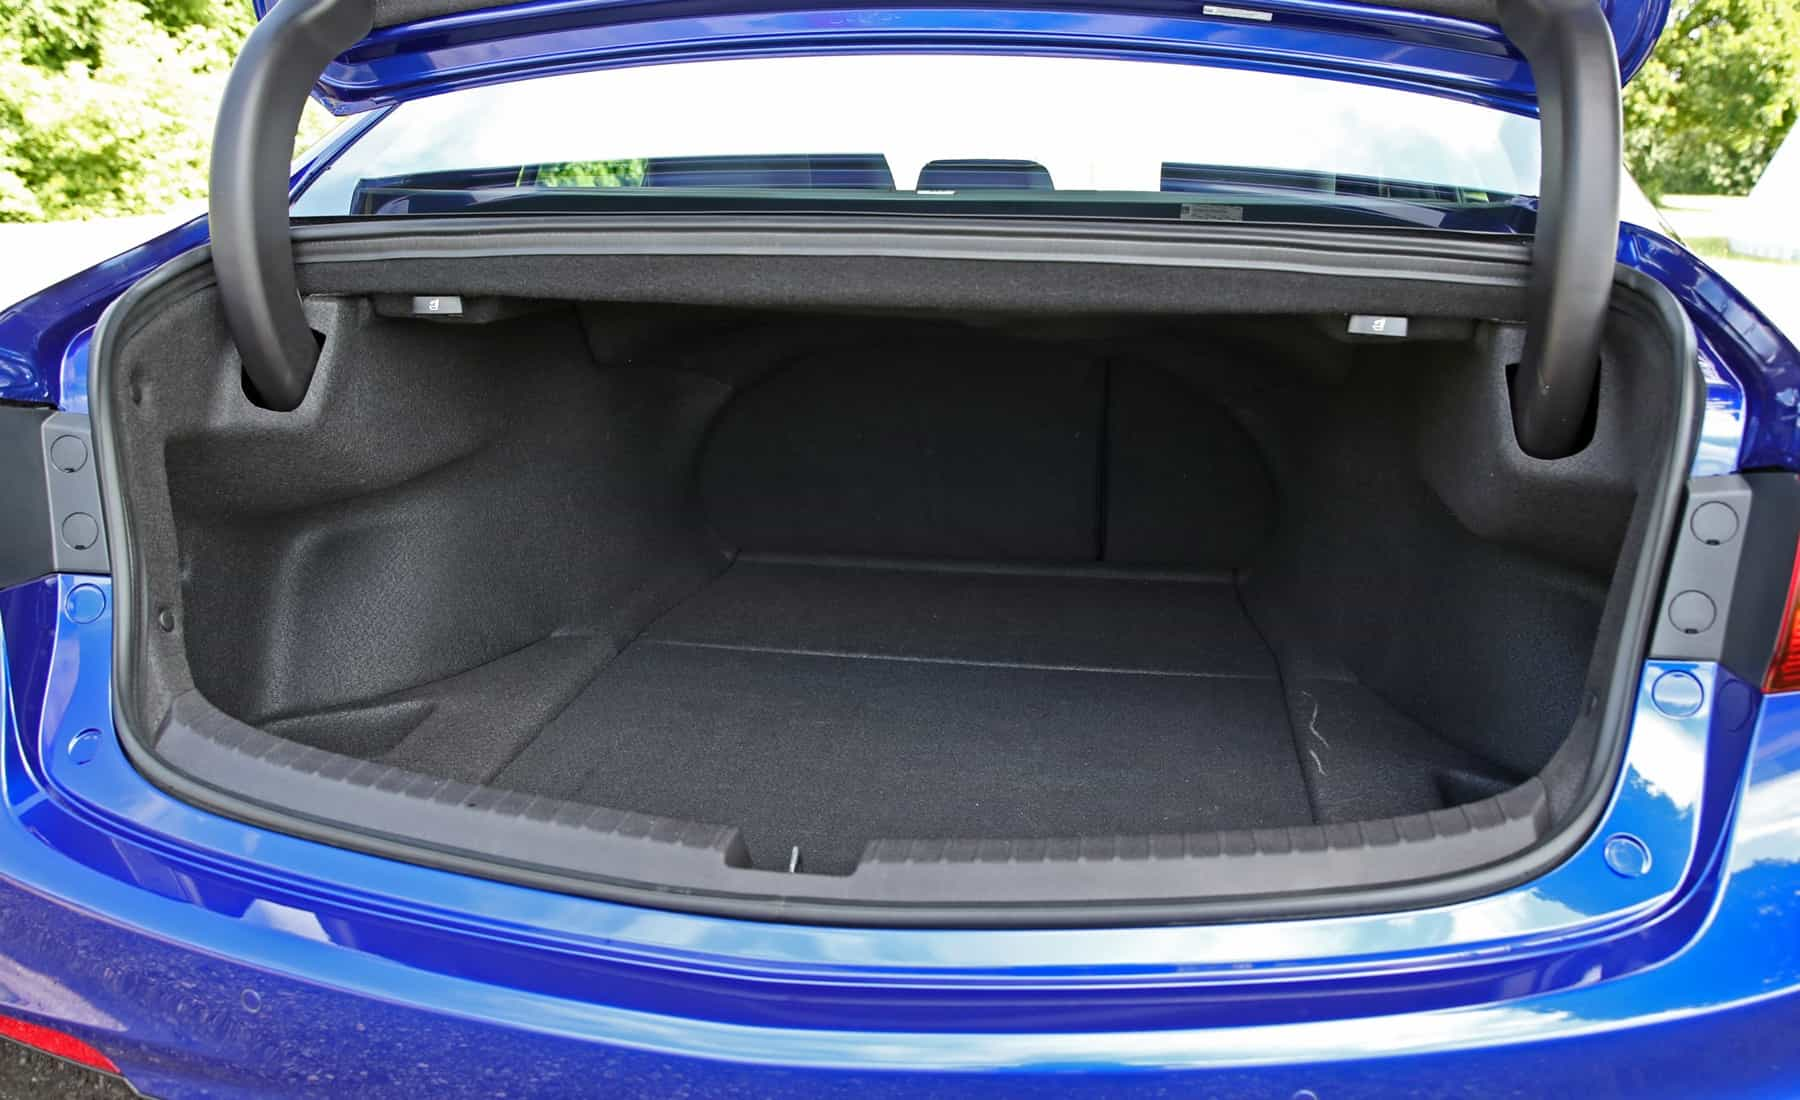 2018 Acura TLX Interior View Trunk (Photo 16 of 46)